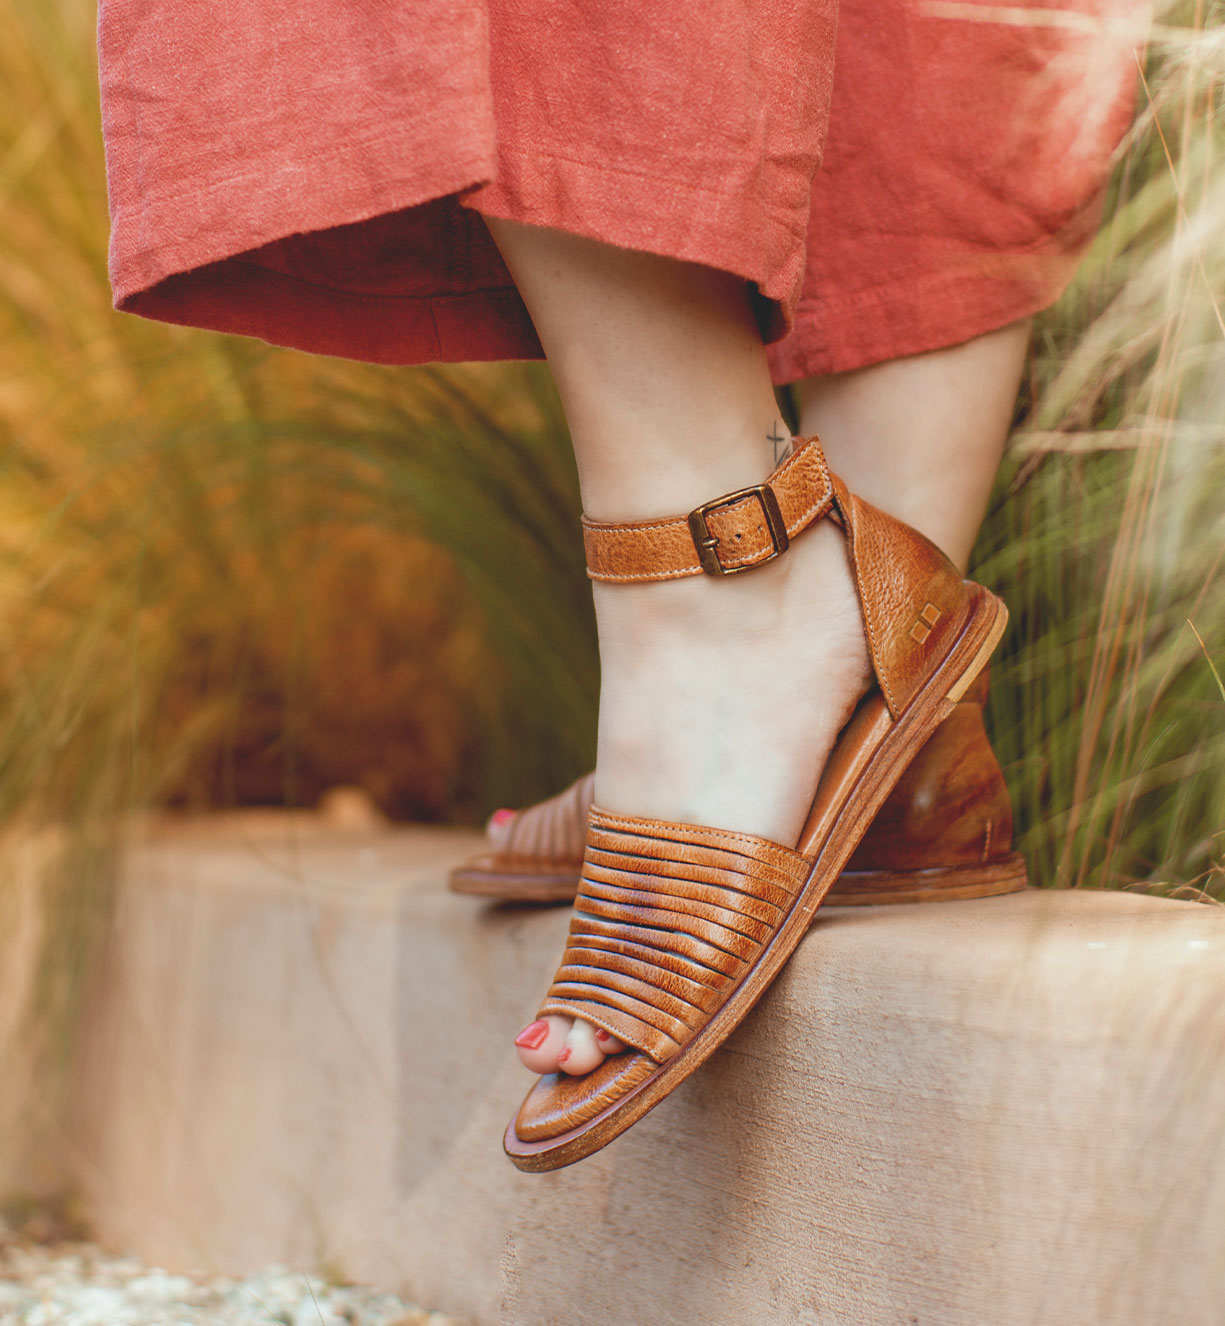 Woman is wearing summer sandals in tan color